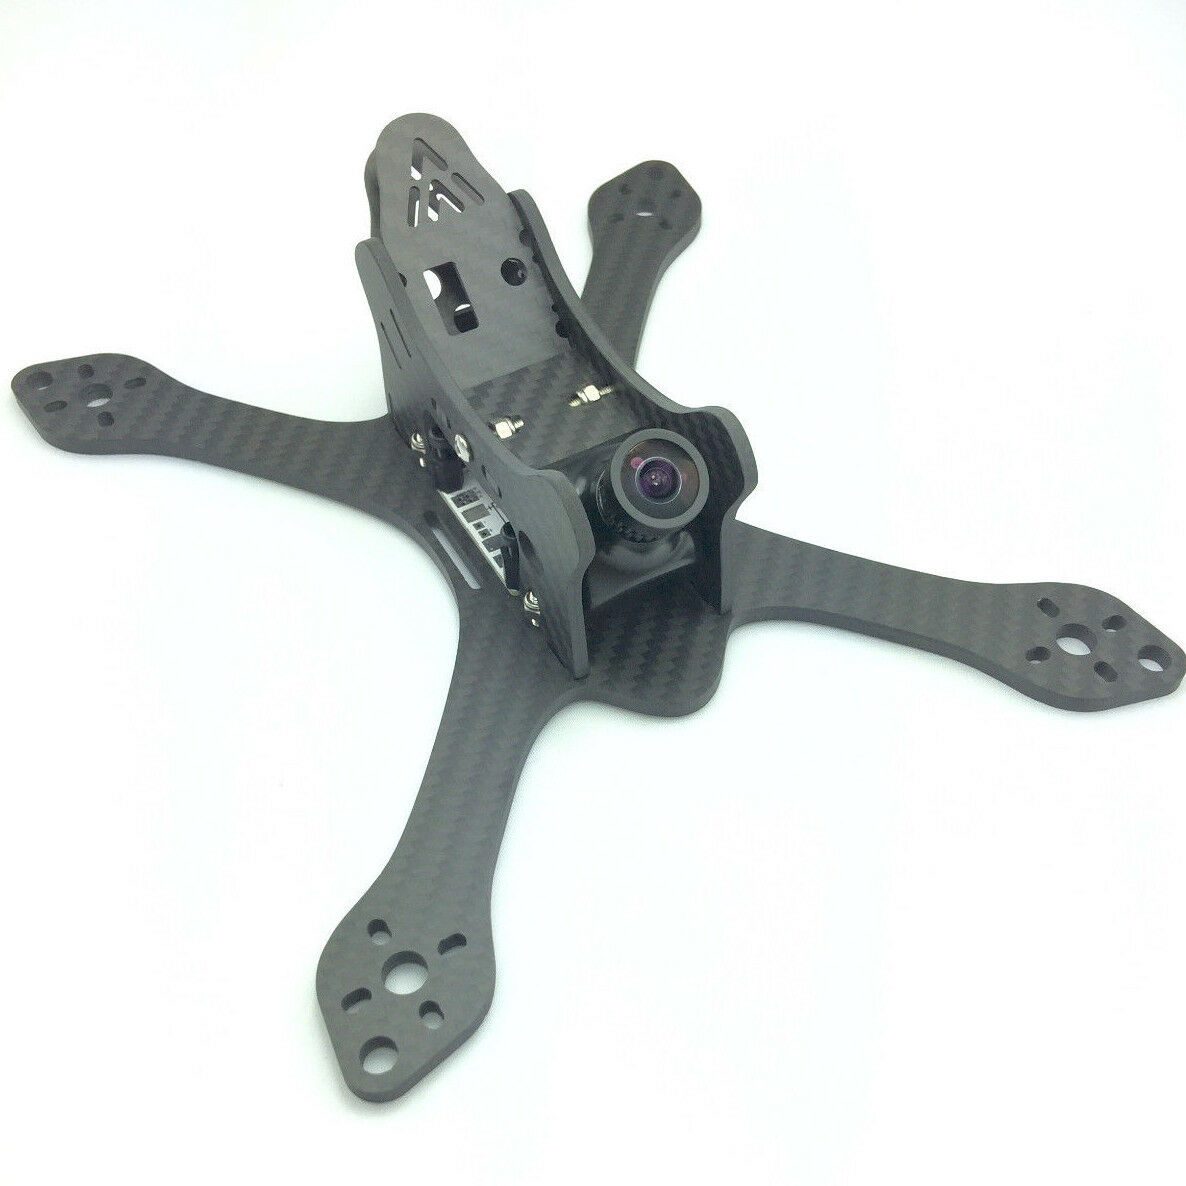 Atmospheric Adventures Aeolus Aeolus Aeolus 5  Carbon Fiber FPV Racing Quadcopter Frame 2906 048558